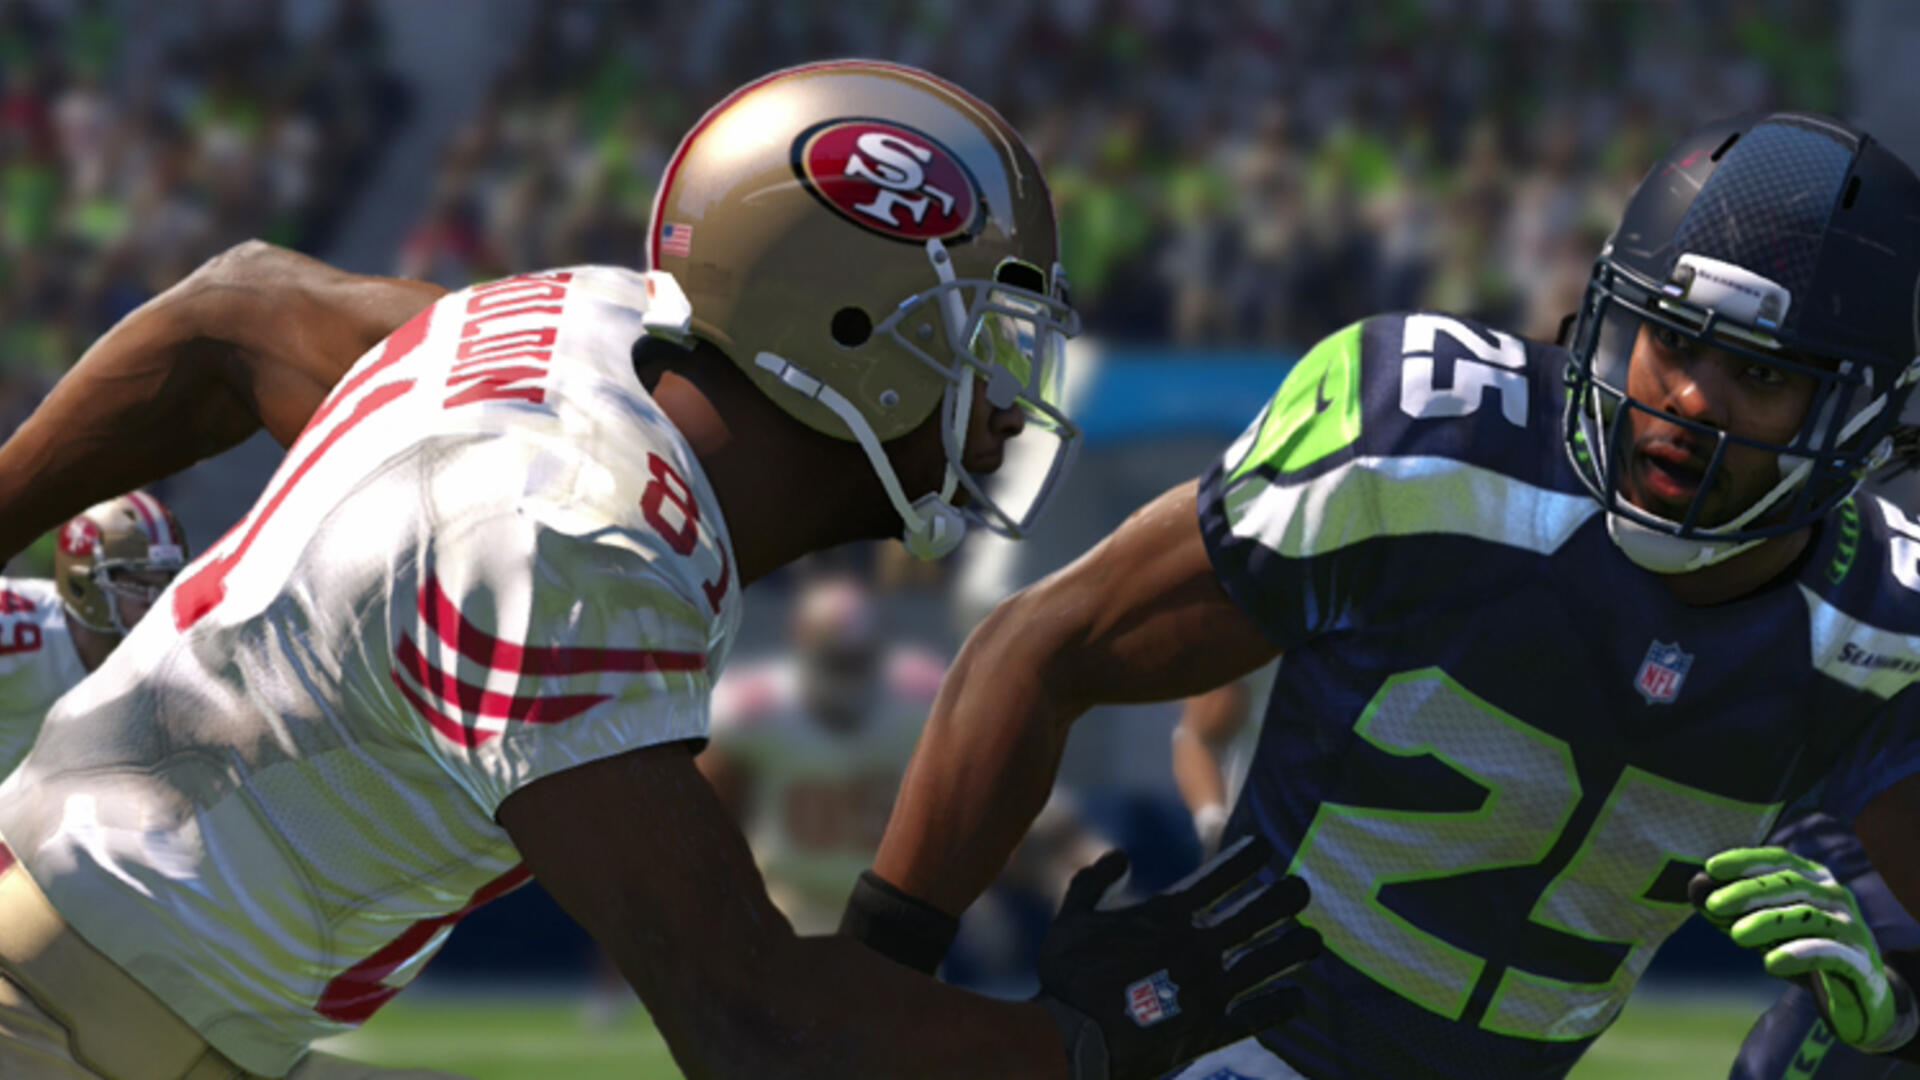 Madden NFL 15 Beginner's Guide: Offense and Defense Tips and